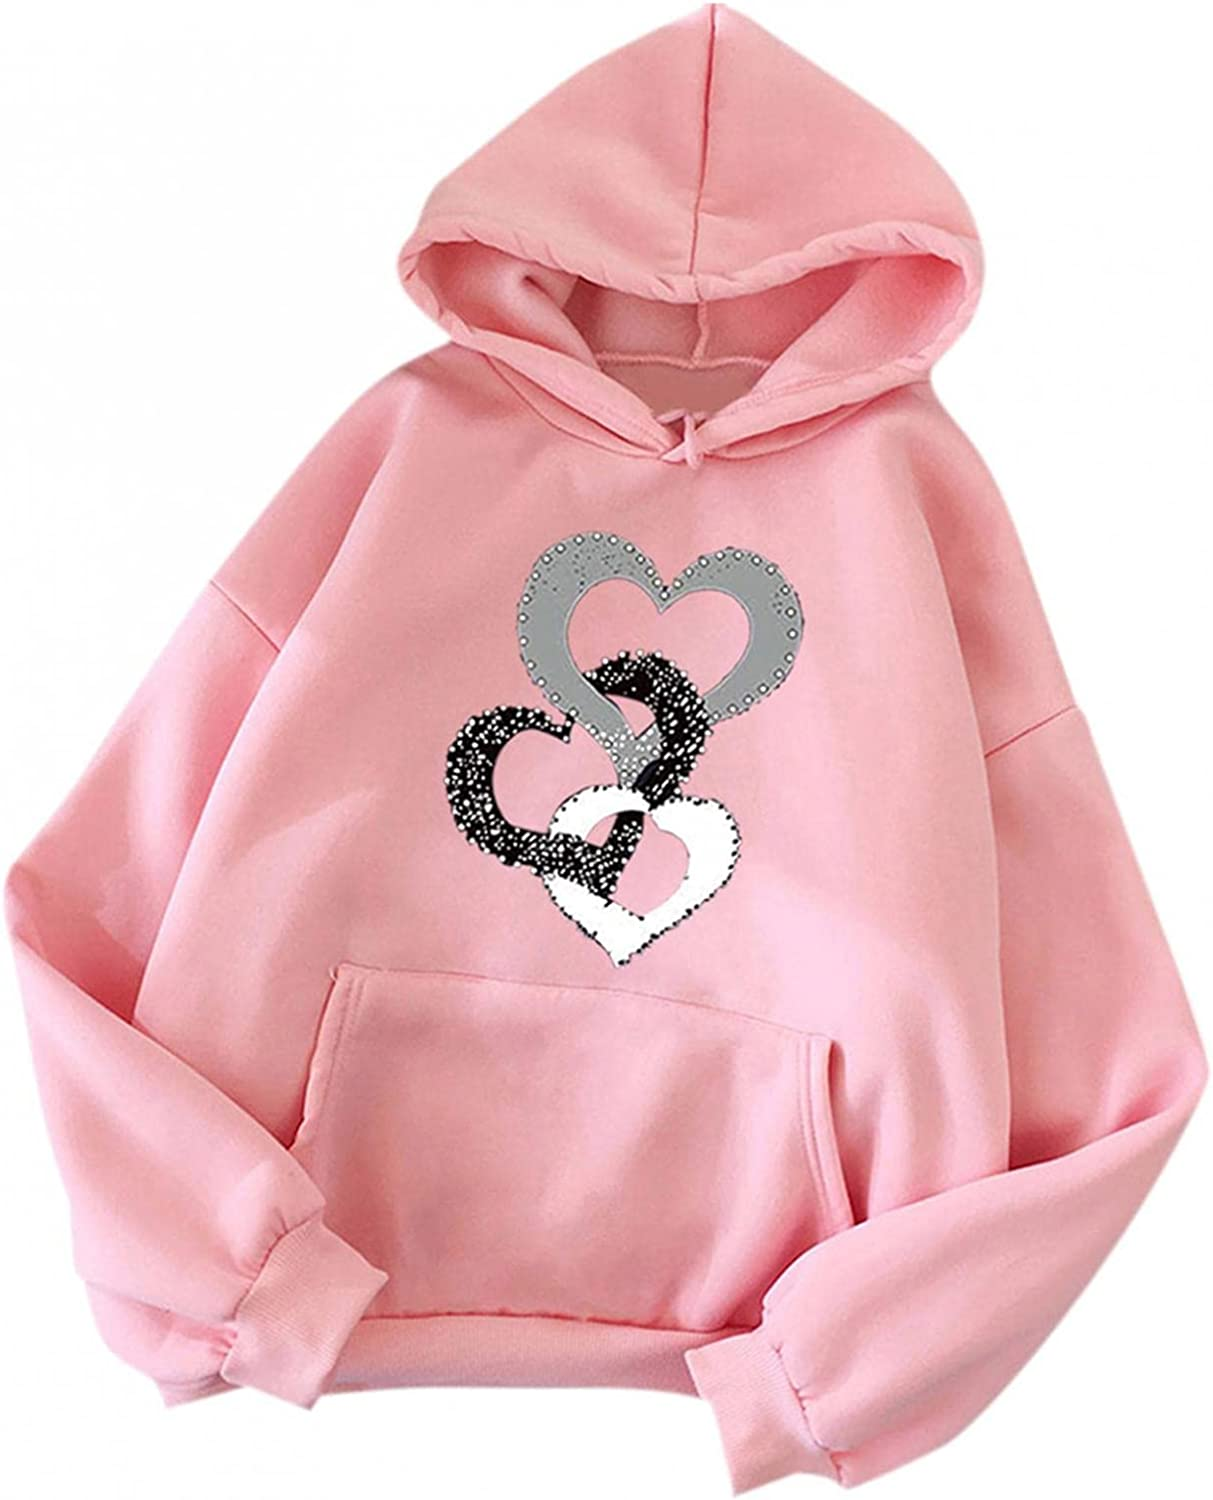 UOCUFY Womens Hoodies, Womens Casual Plus Size Sweatshirts Cute Printing Long Sleeve Pullover Hoodies Autumn and Winter